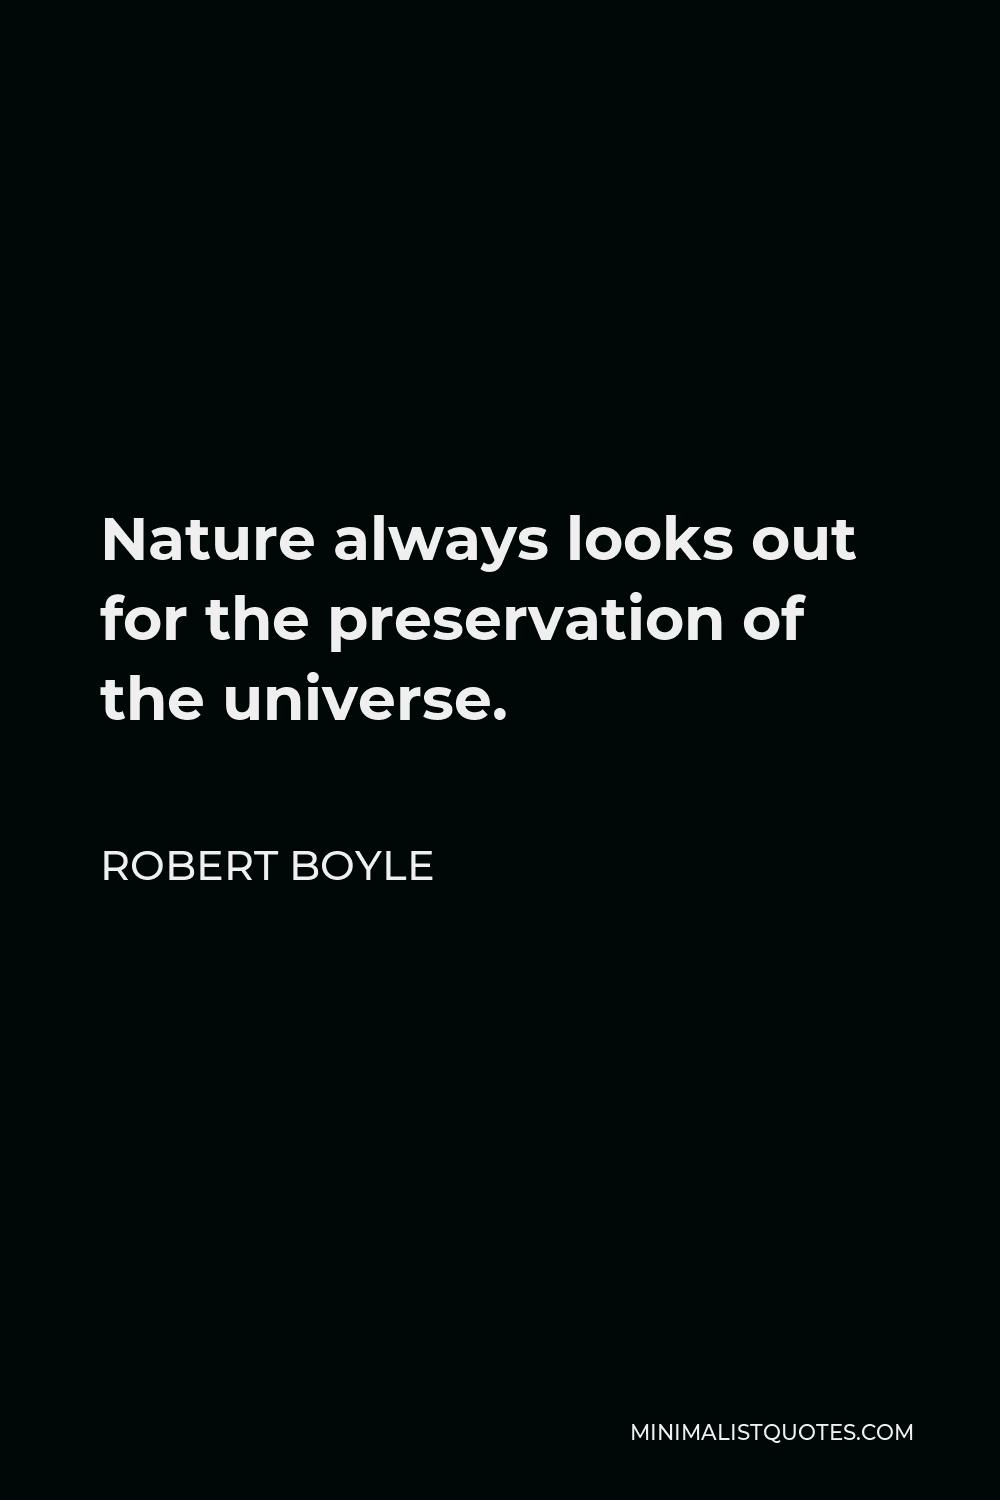 Robert Boyle Quote - Nature always looks out for the preservation of the universe.